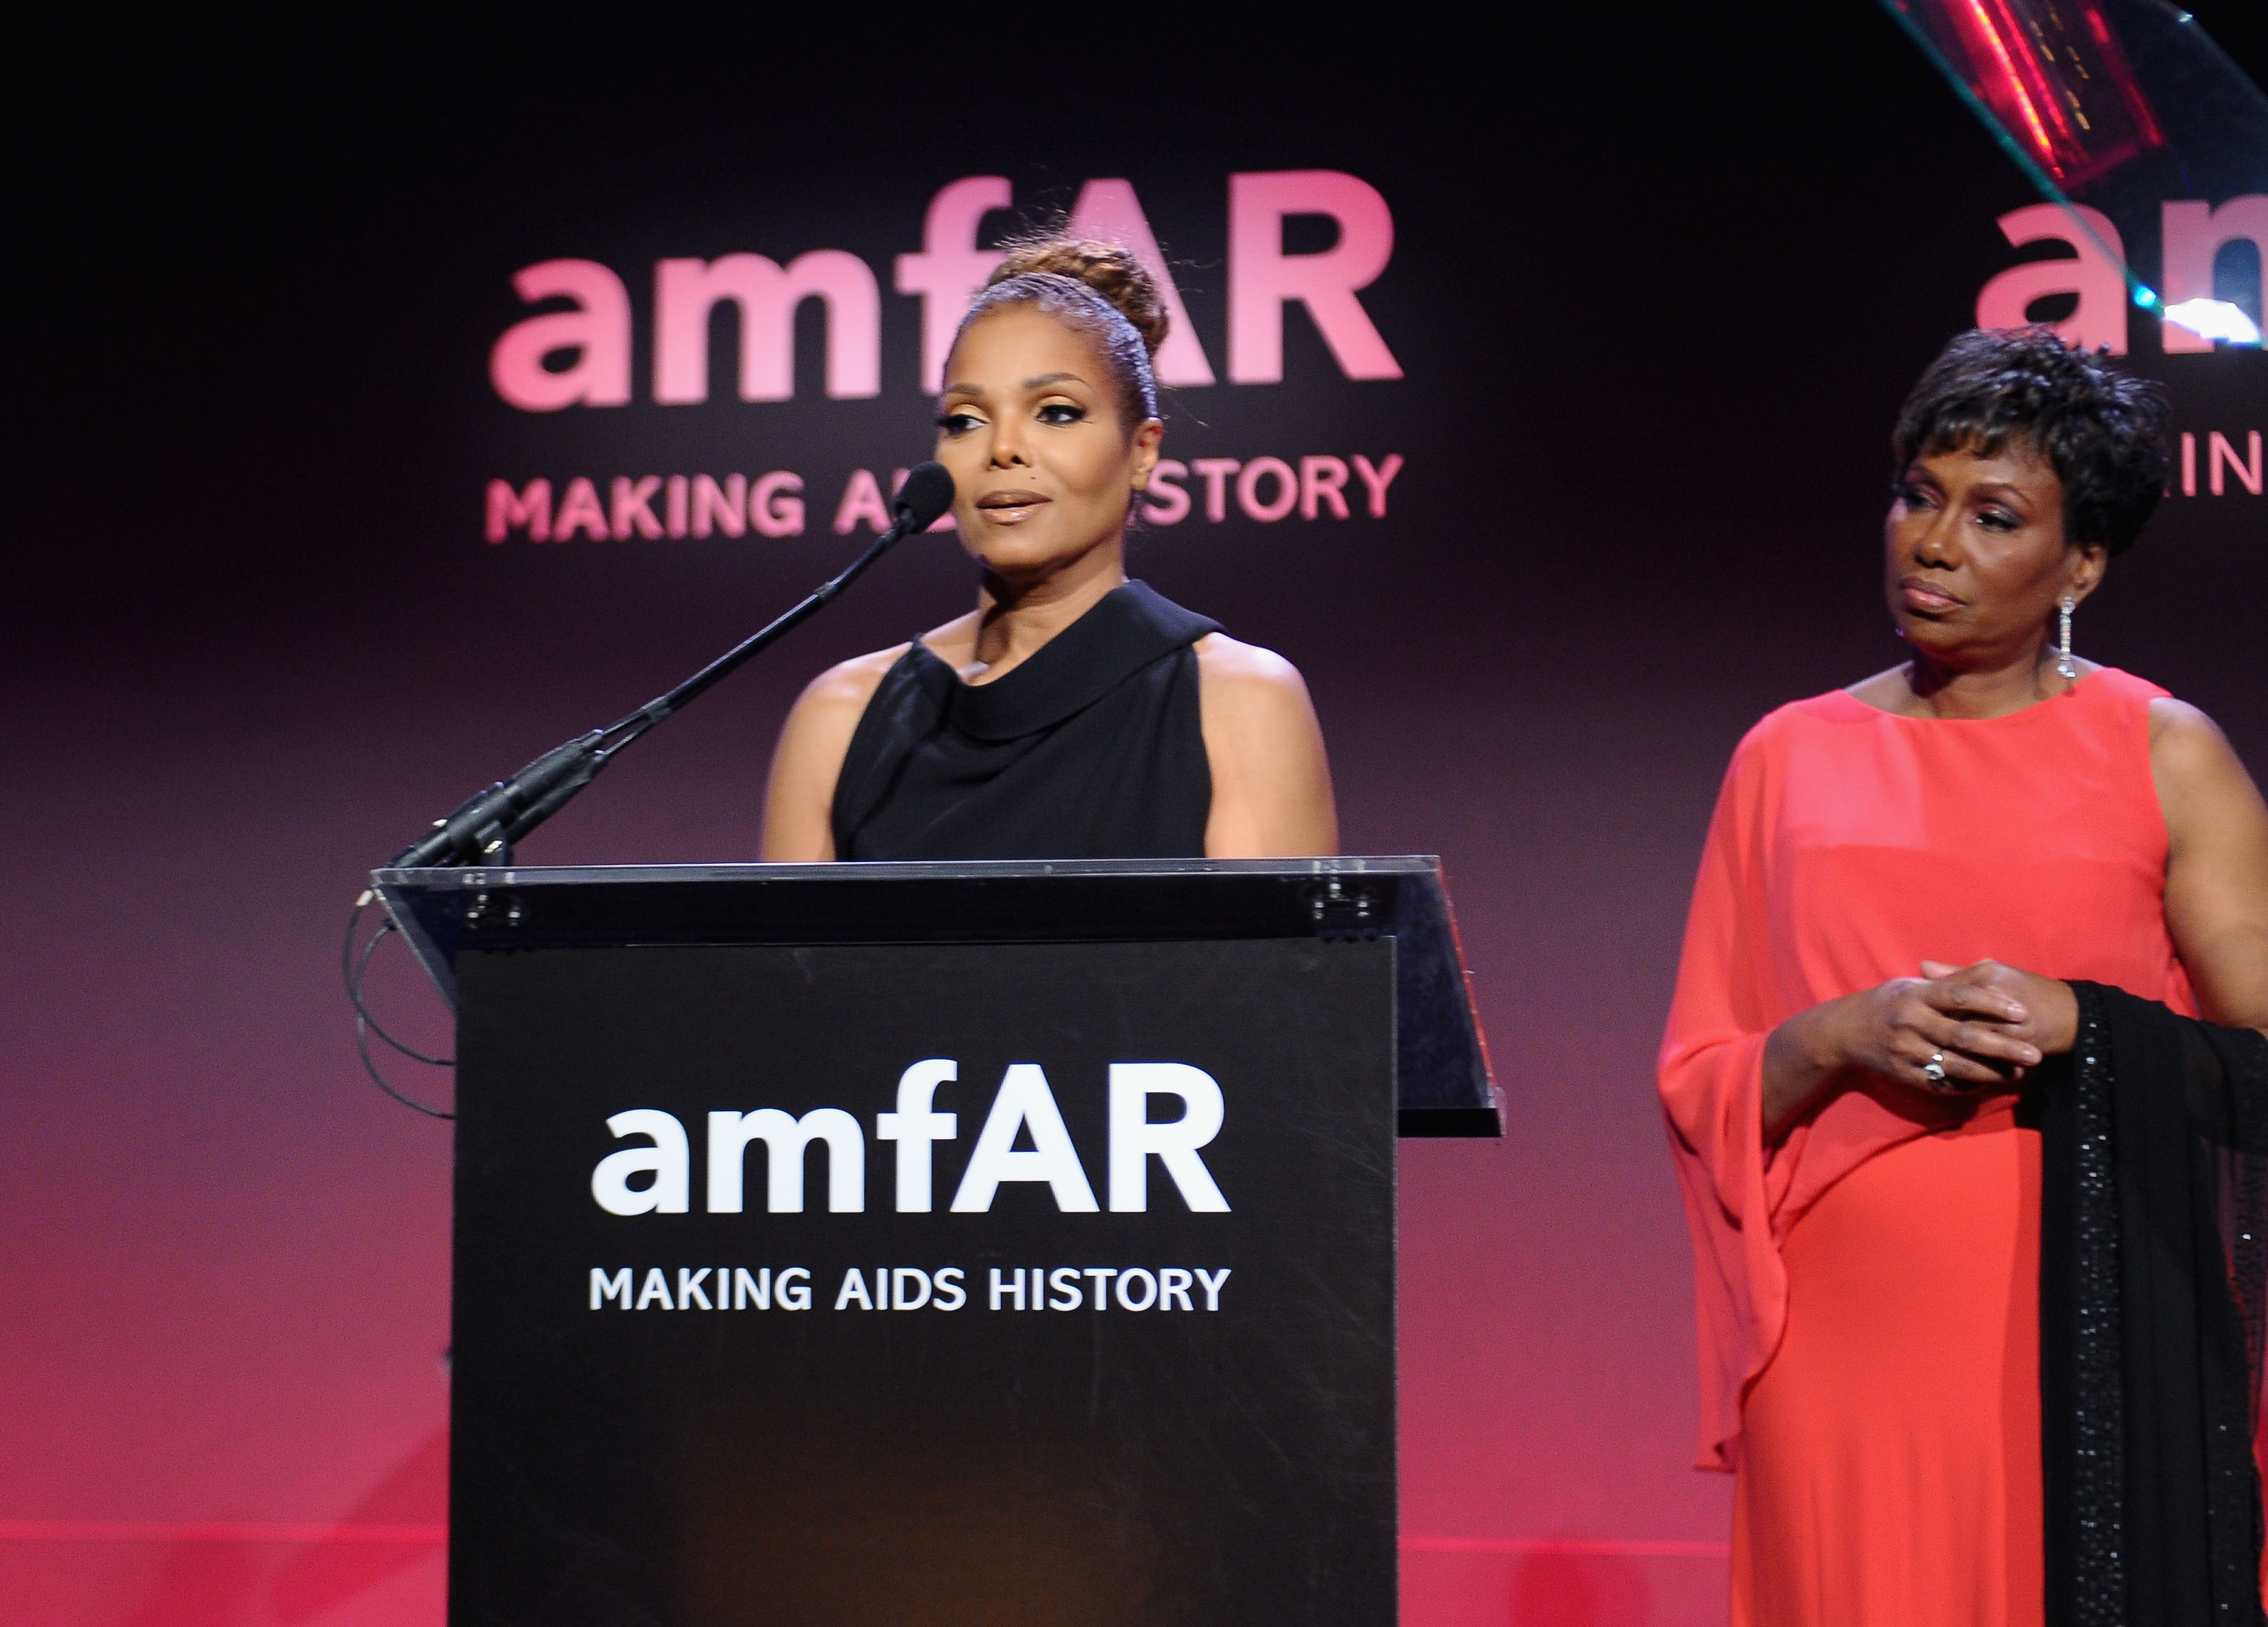 On Wednesday night, Janet Jackson presented an award at the amfAR New York Gala.